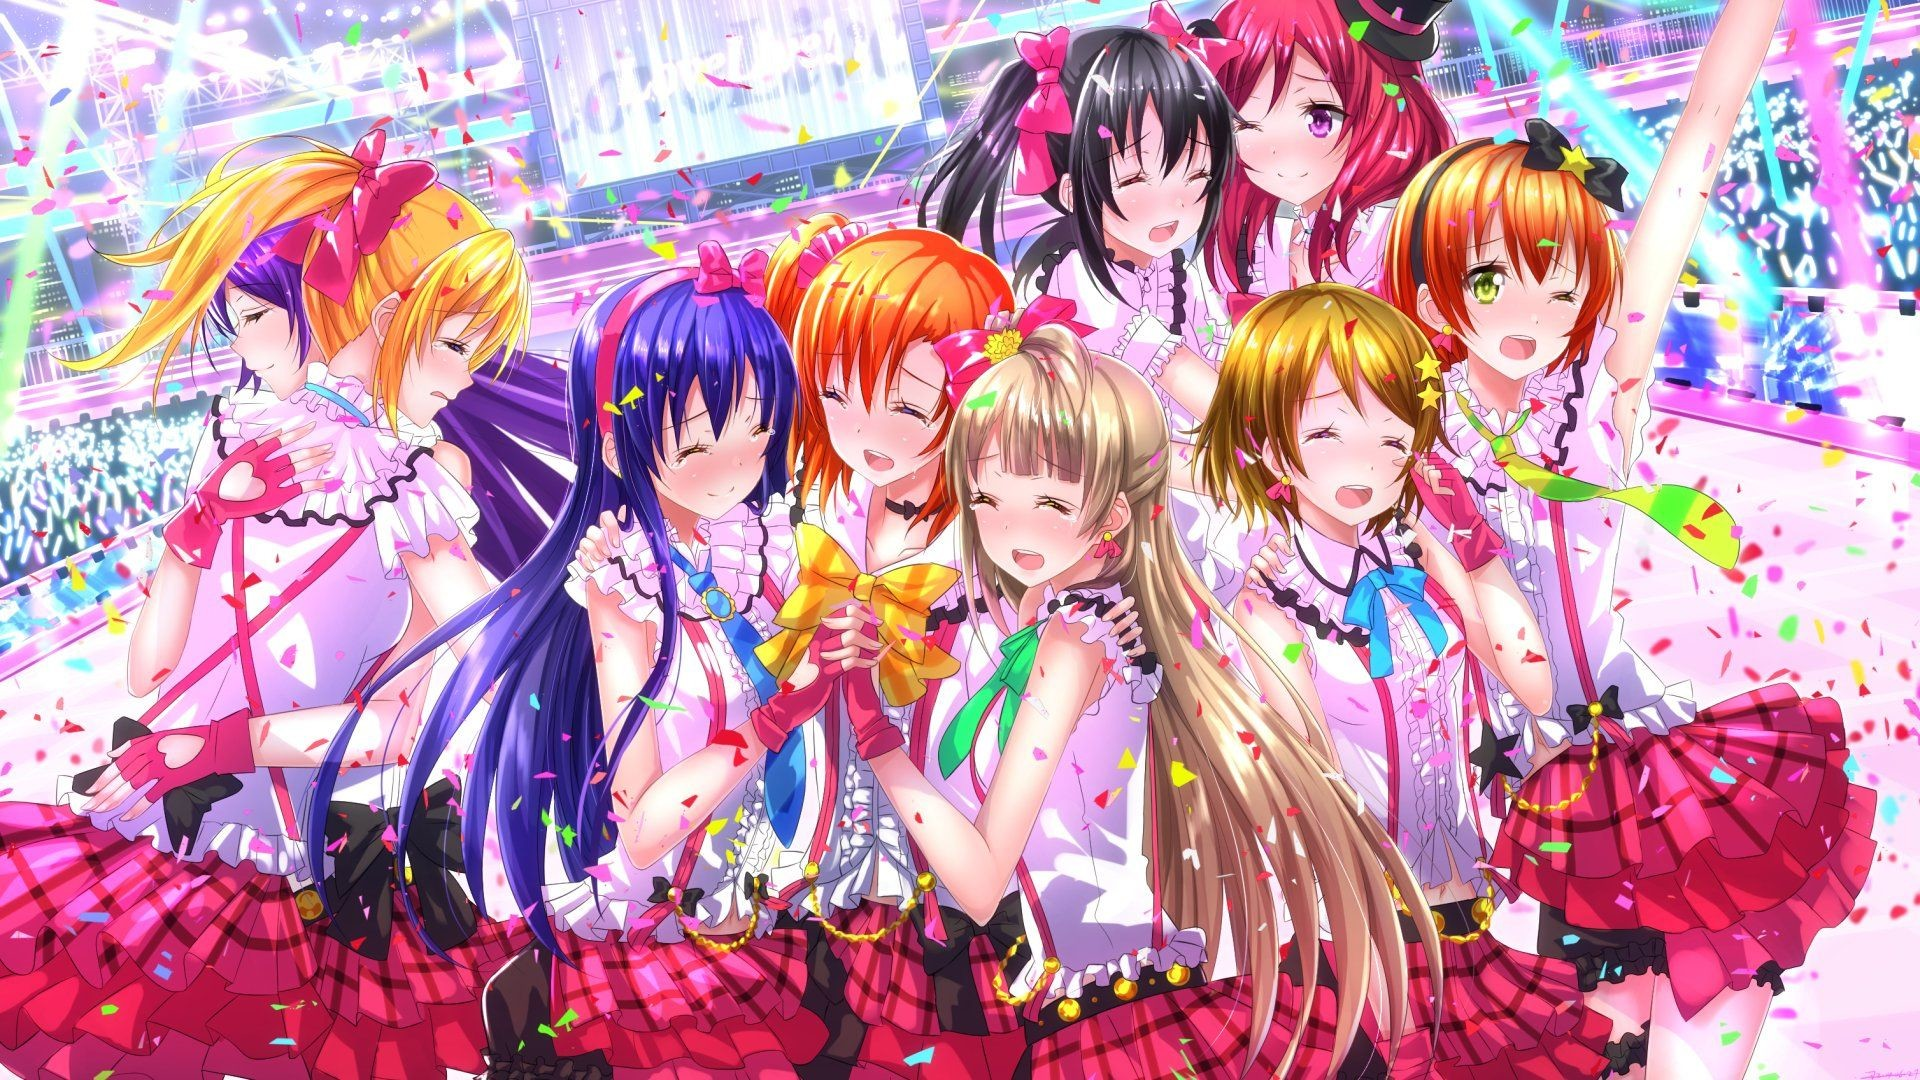 Res: 1920x1080, Love Live Wallpaper Page 1920×1080 Love Live Wallpapers (31 Wallpapers) |  Adorable Wallpapers